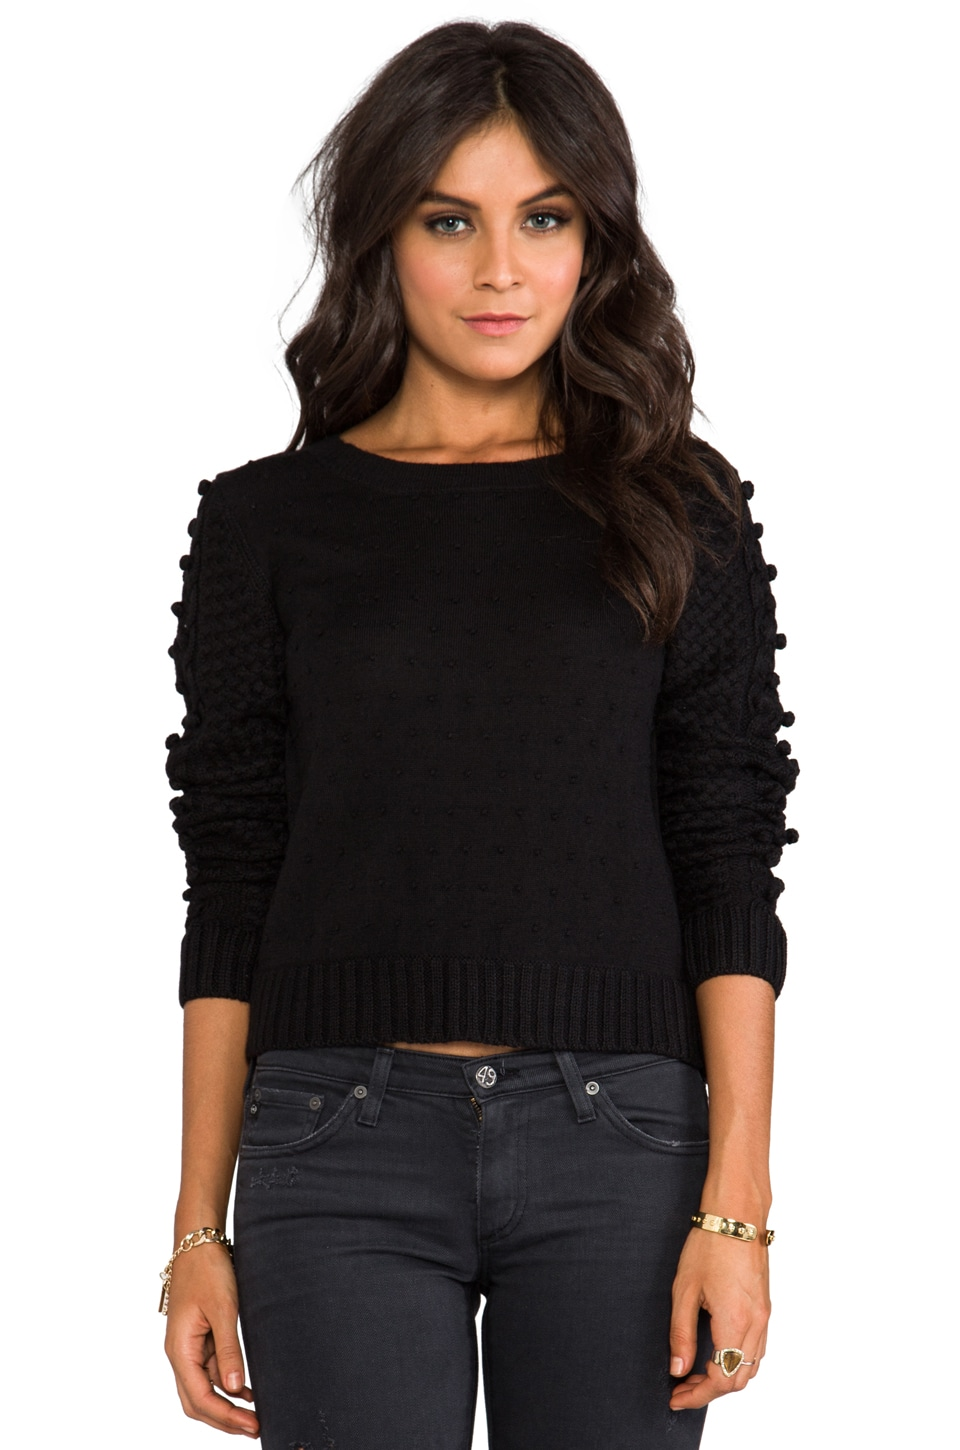 Greylin Dot Lover Sweater in Black